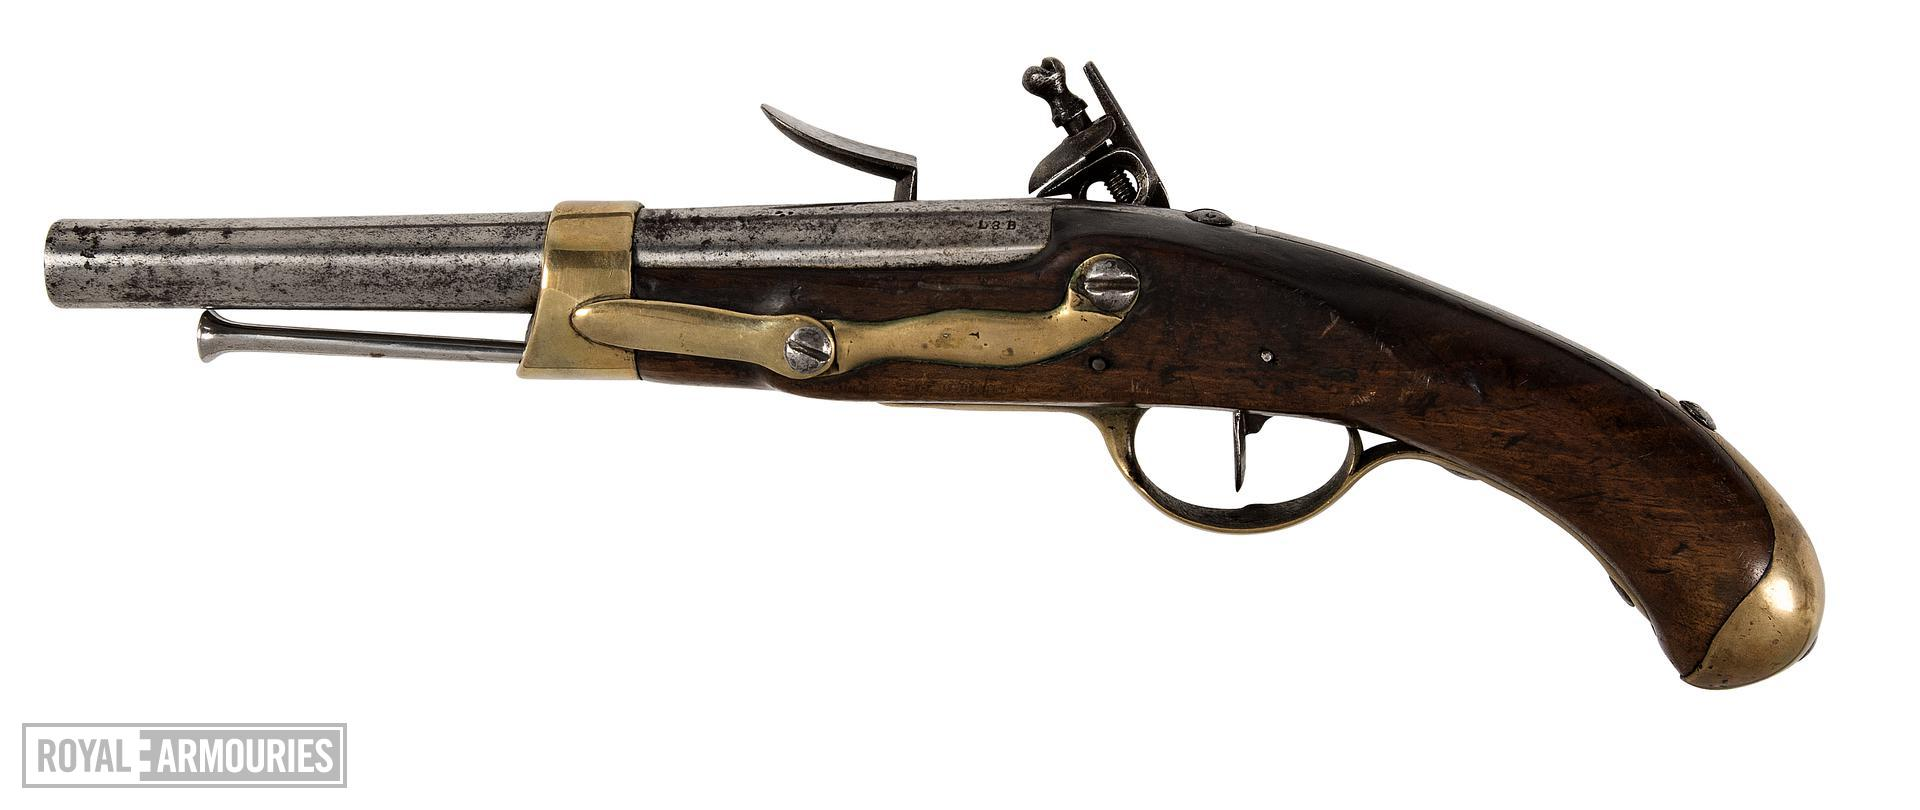 Model 1786 Marine (1804) muzzle-loading flintlock military pistol, France, about 1804 (XII.4012)